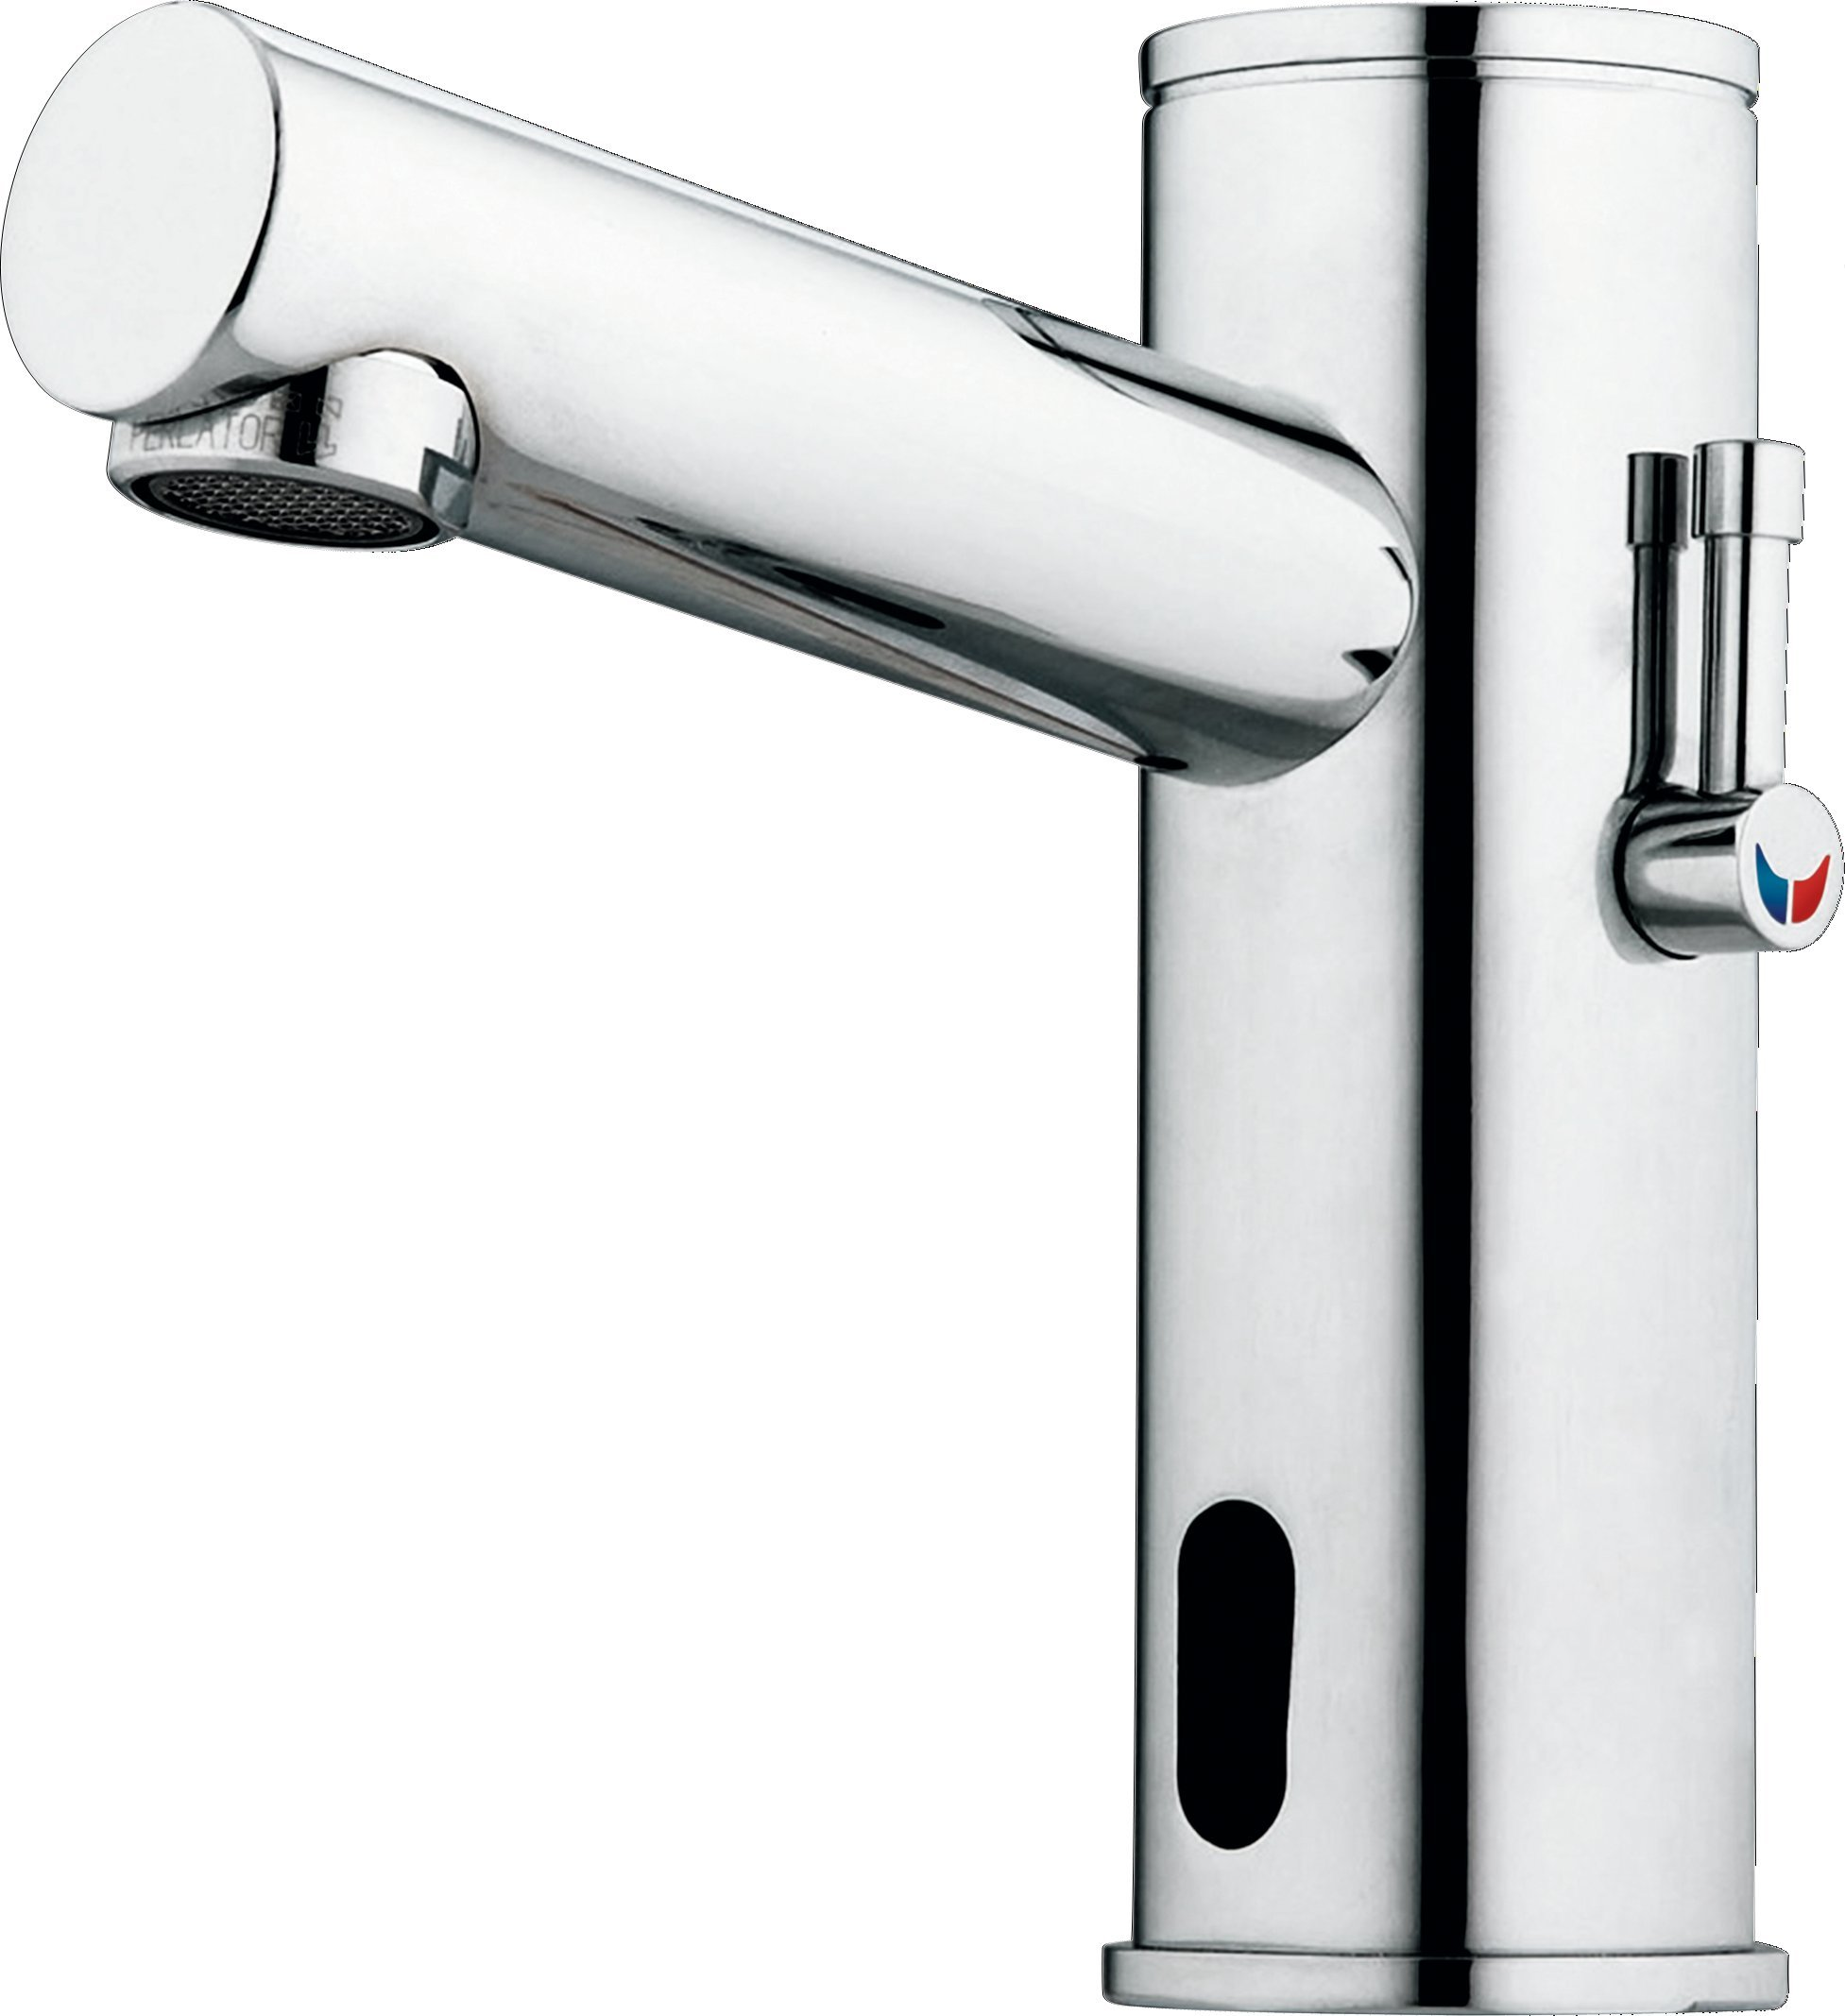 Delta Faucet DEMD-311LF Electronic Bathroom with Mixer, Chrome by DELTA FAUCET